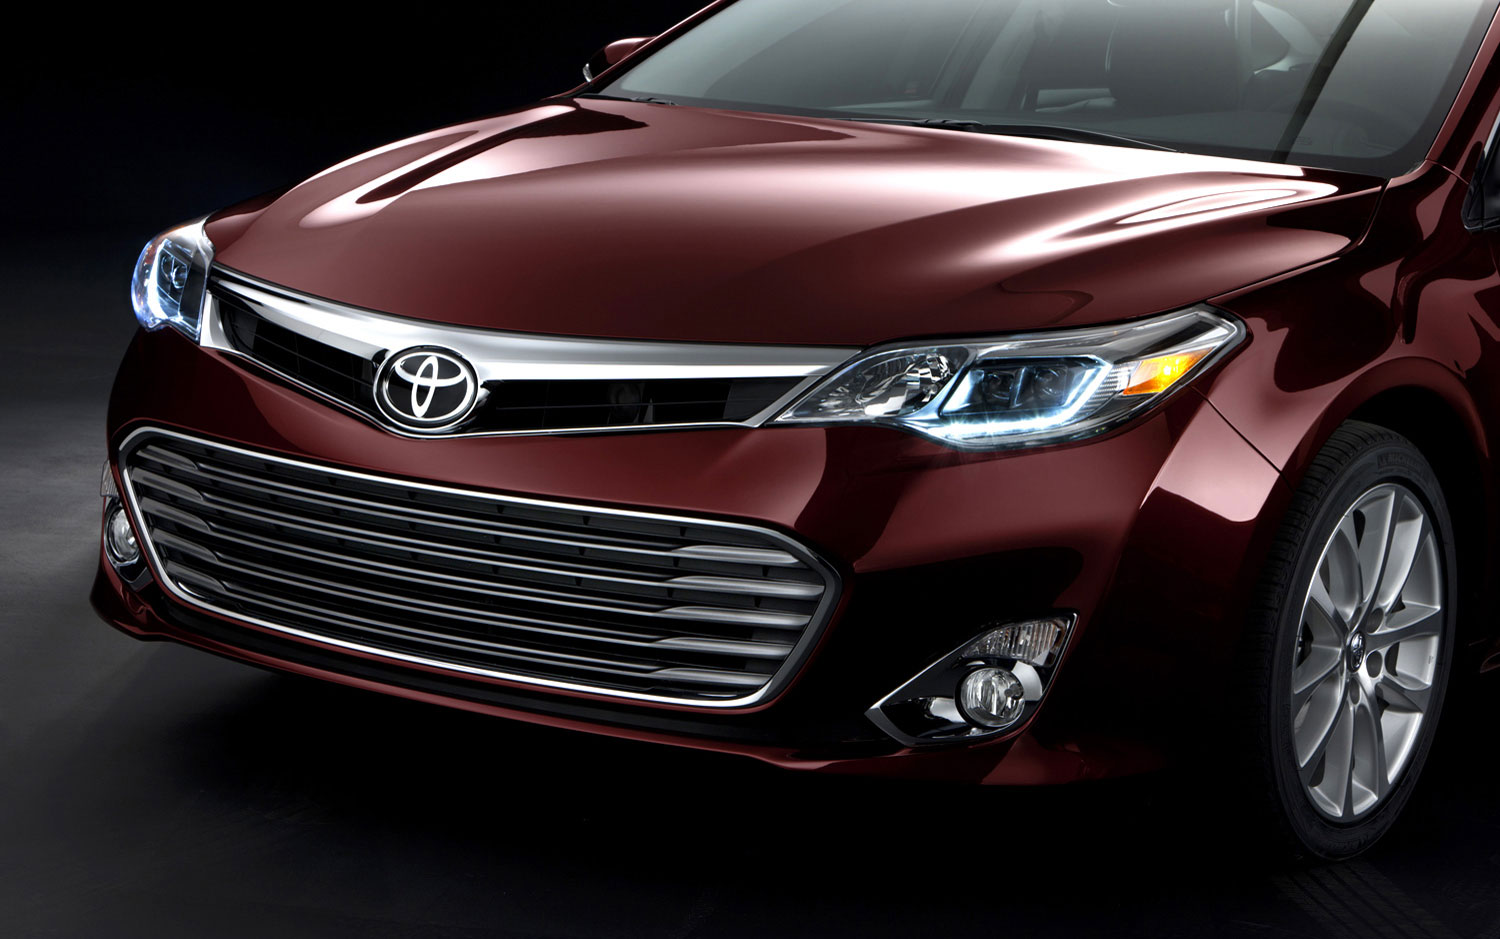 cars model 2013 2014 2012 new york 2013 toyota avalon moves from milquetoast to modernistic. Black Bedroom Furniture Sets. Home Design Ideas